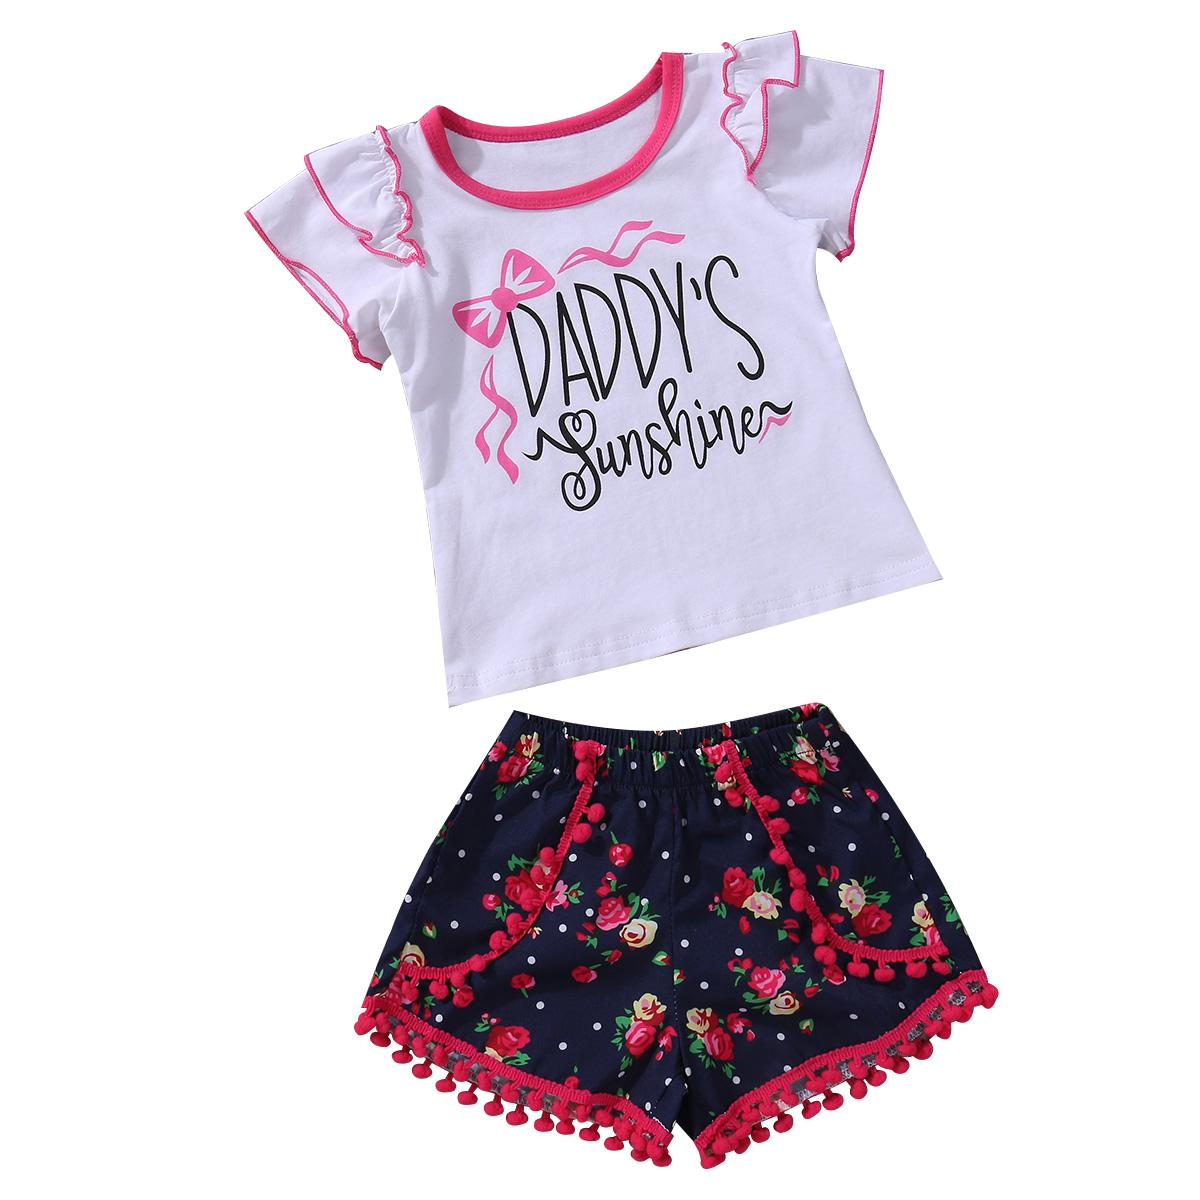 Baby & Toddler Clothing Girls' Clothing (newborn-5t) Baby Girls Newborn Baby Vests 100% Guarantee